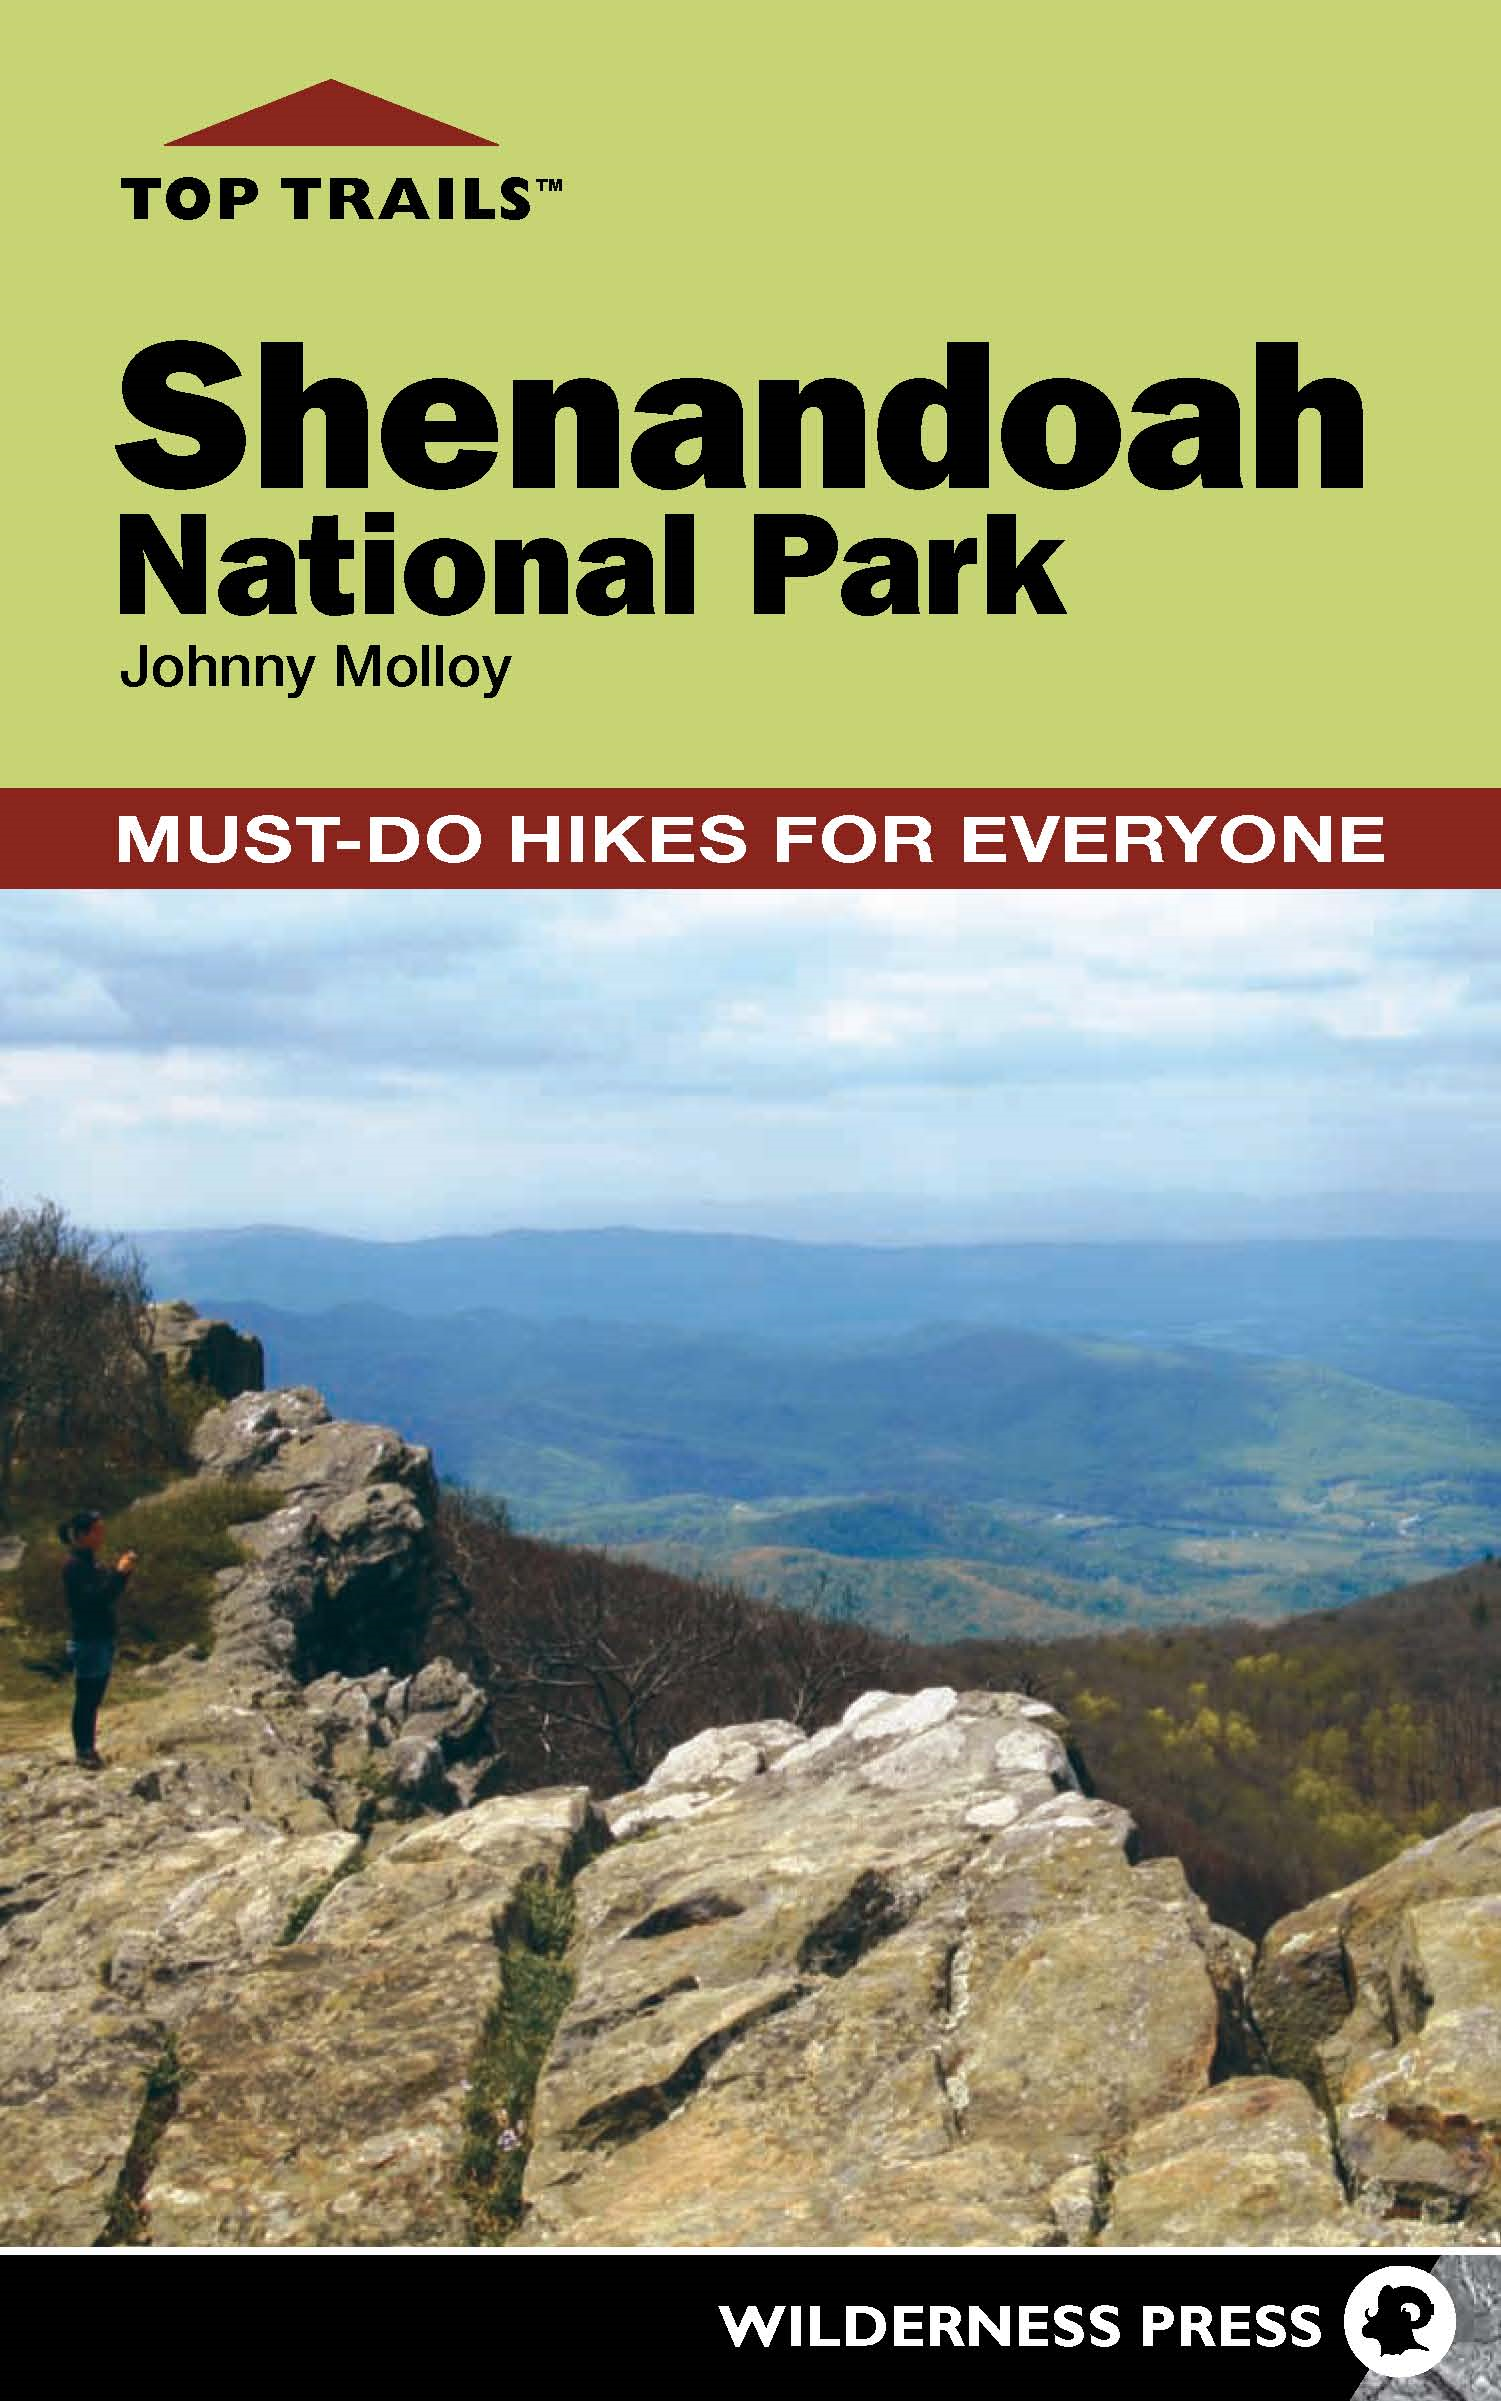 Top Trails: Shenandoah National Park